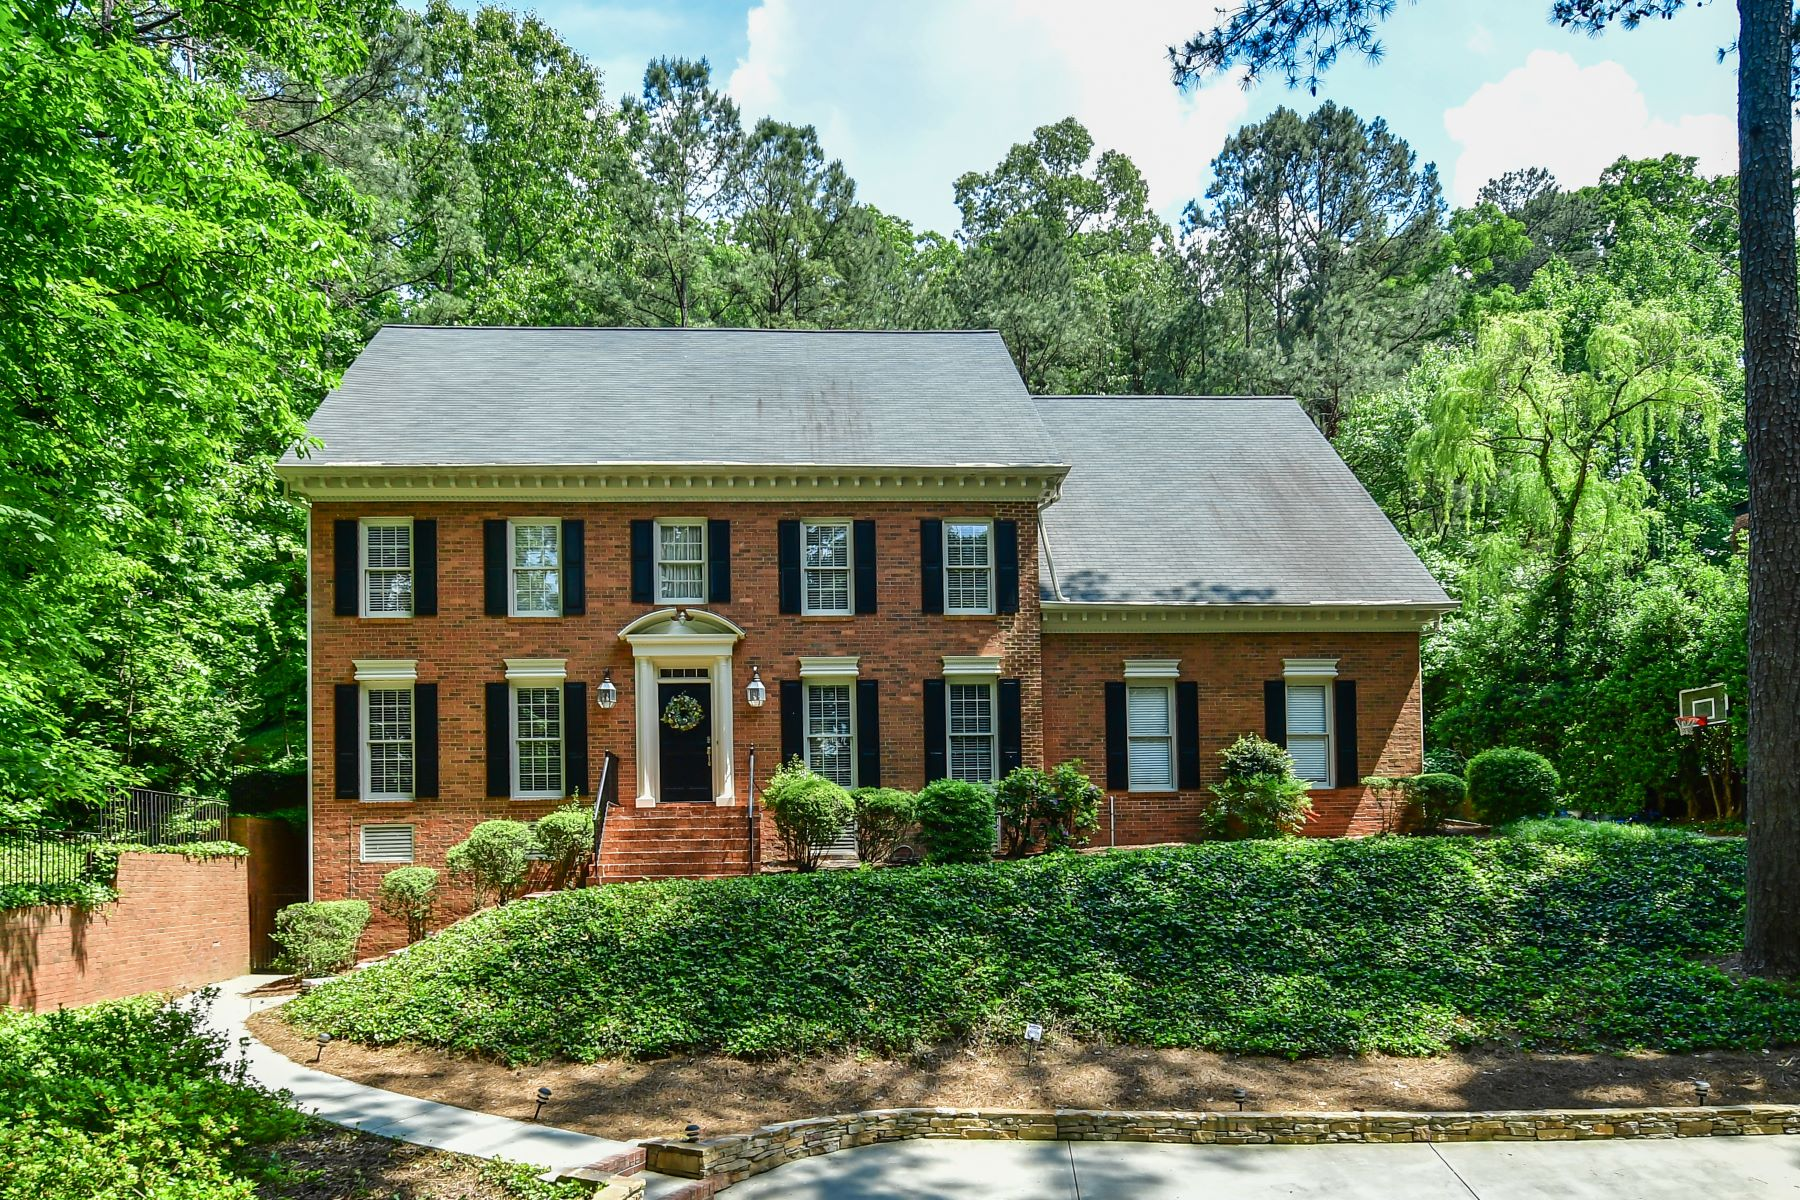 Single Family Home for Sale at Elegant Brick Traditional On One Acre Lot 390 River Valley Road Atlanta, Georgia 30328 United States